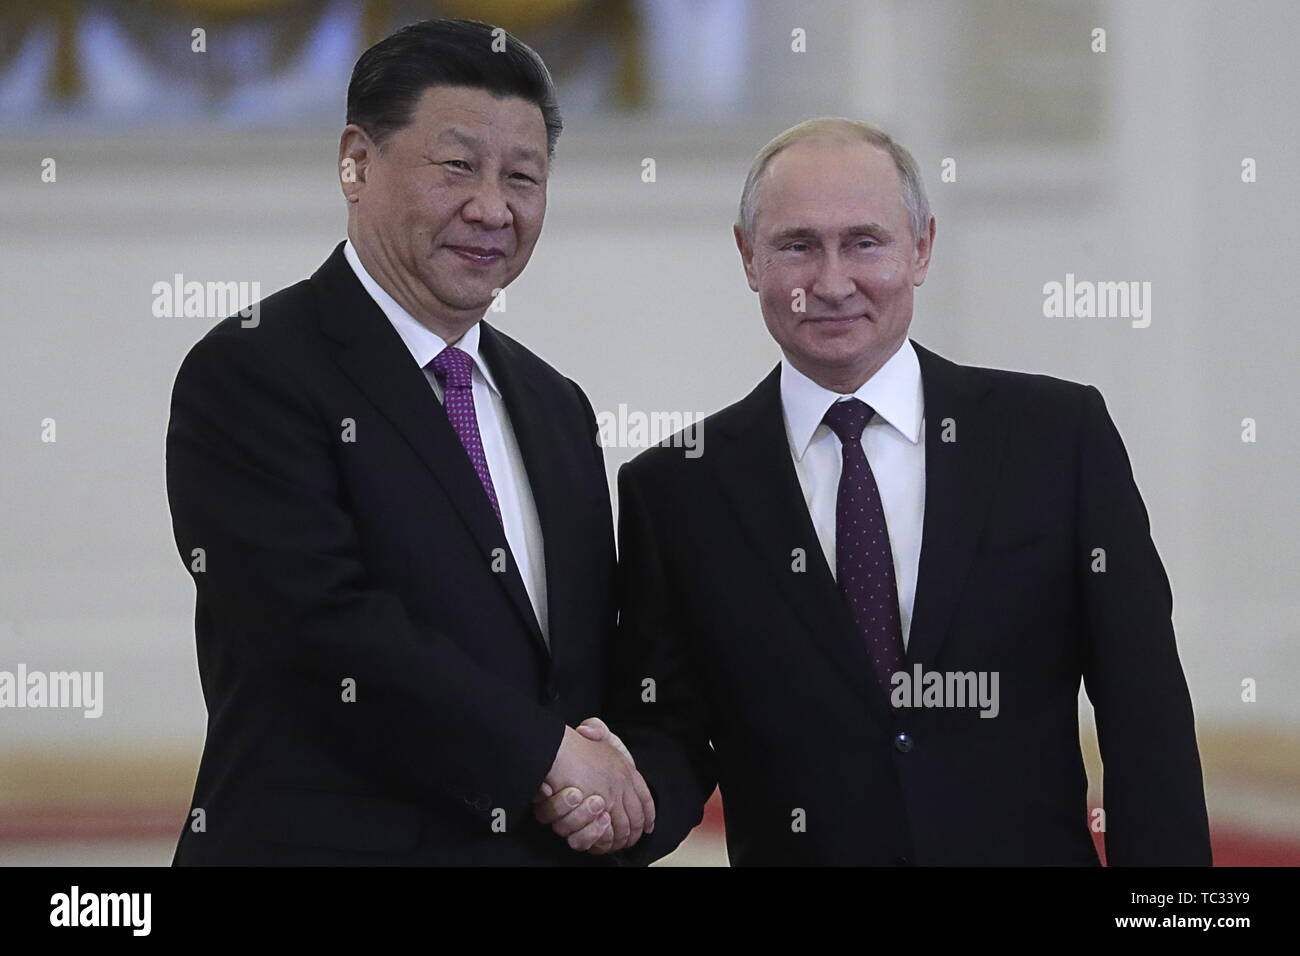 Moscow, Russia. 05th June, 2019. MOSCOW, RUSSIA - JUNE 5, 2019: China's President Xi Jinping (L) and Russia's President Vladimir Putin shake hands during a meeting in the Moscow Kremlin; the Chinese leader is on a three-day state visit to Russia. Mikhail Metzel/TASS Credit: ITAR-TASS News Agency/Alamy Live News - Stock Image